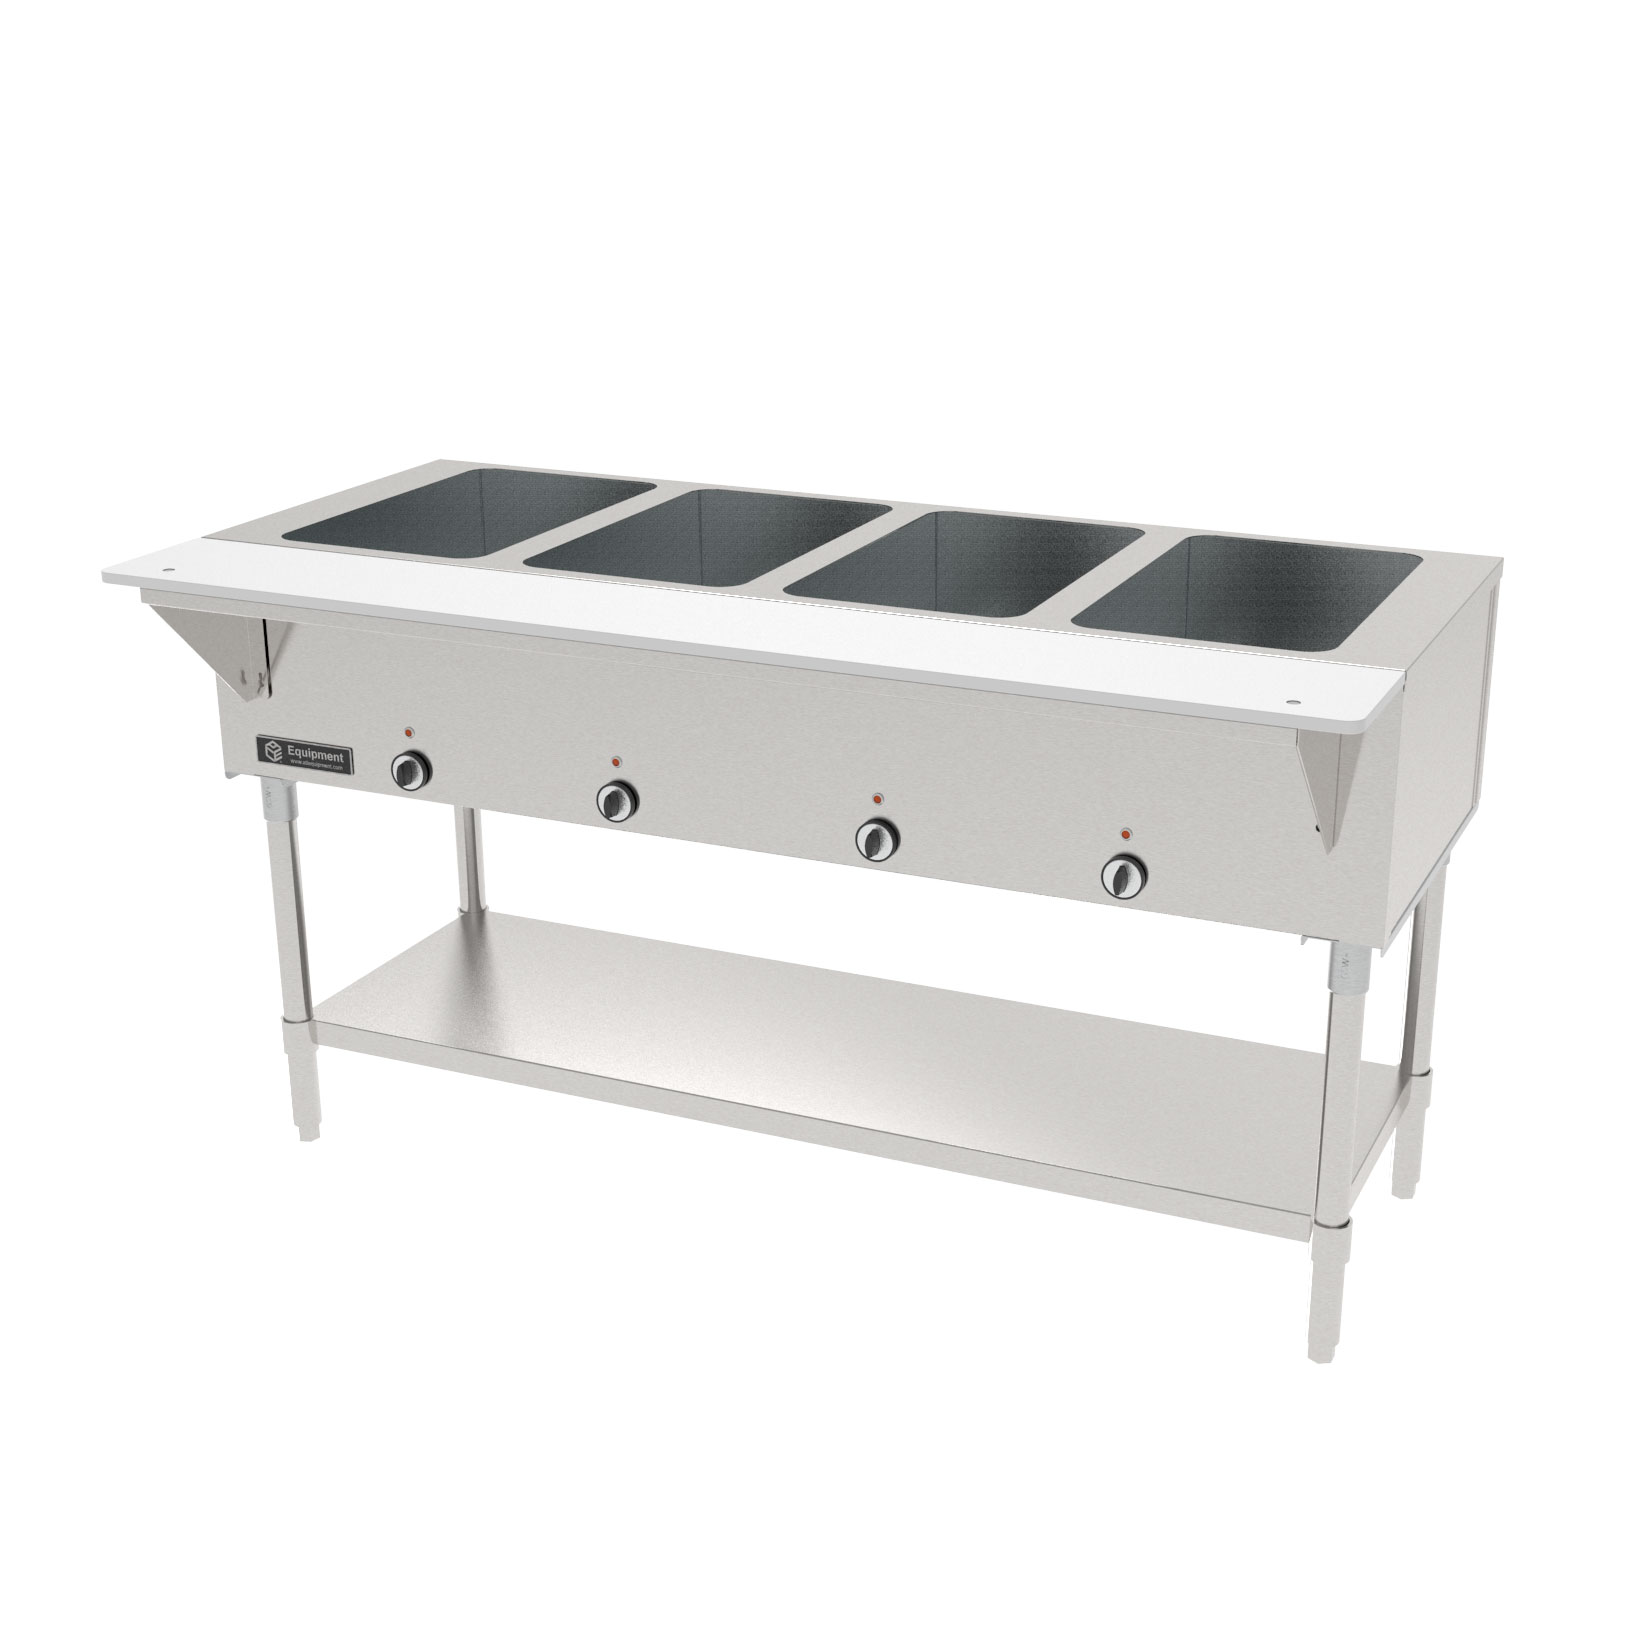 GSW USA ST-5WOE-240 serving counter, hot food, electric